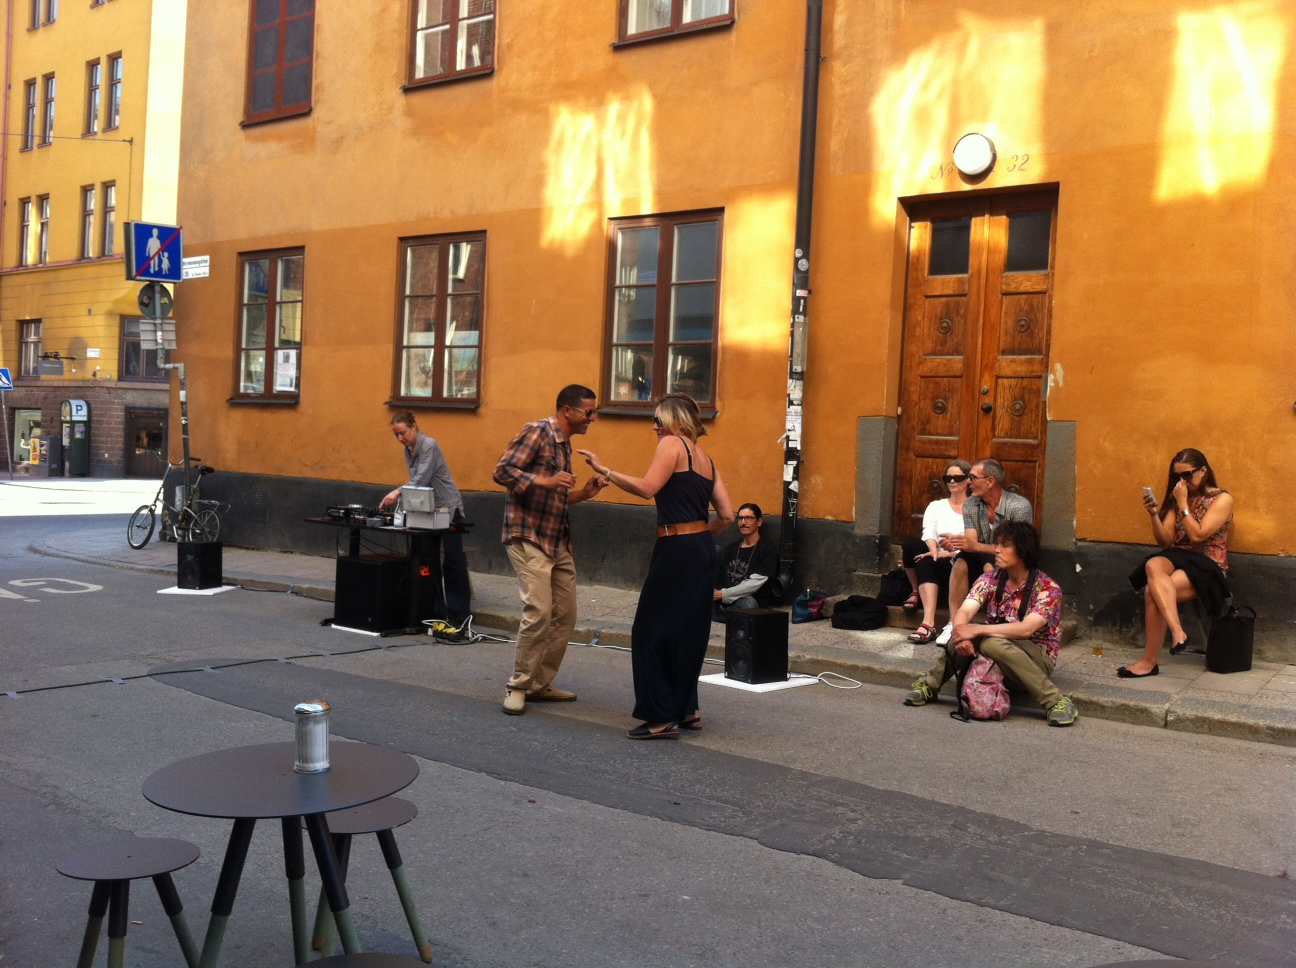 Experiences from SOFO in our Stockholm tour